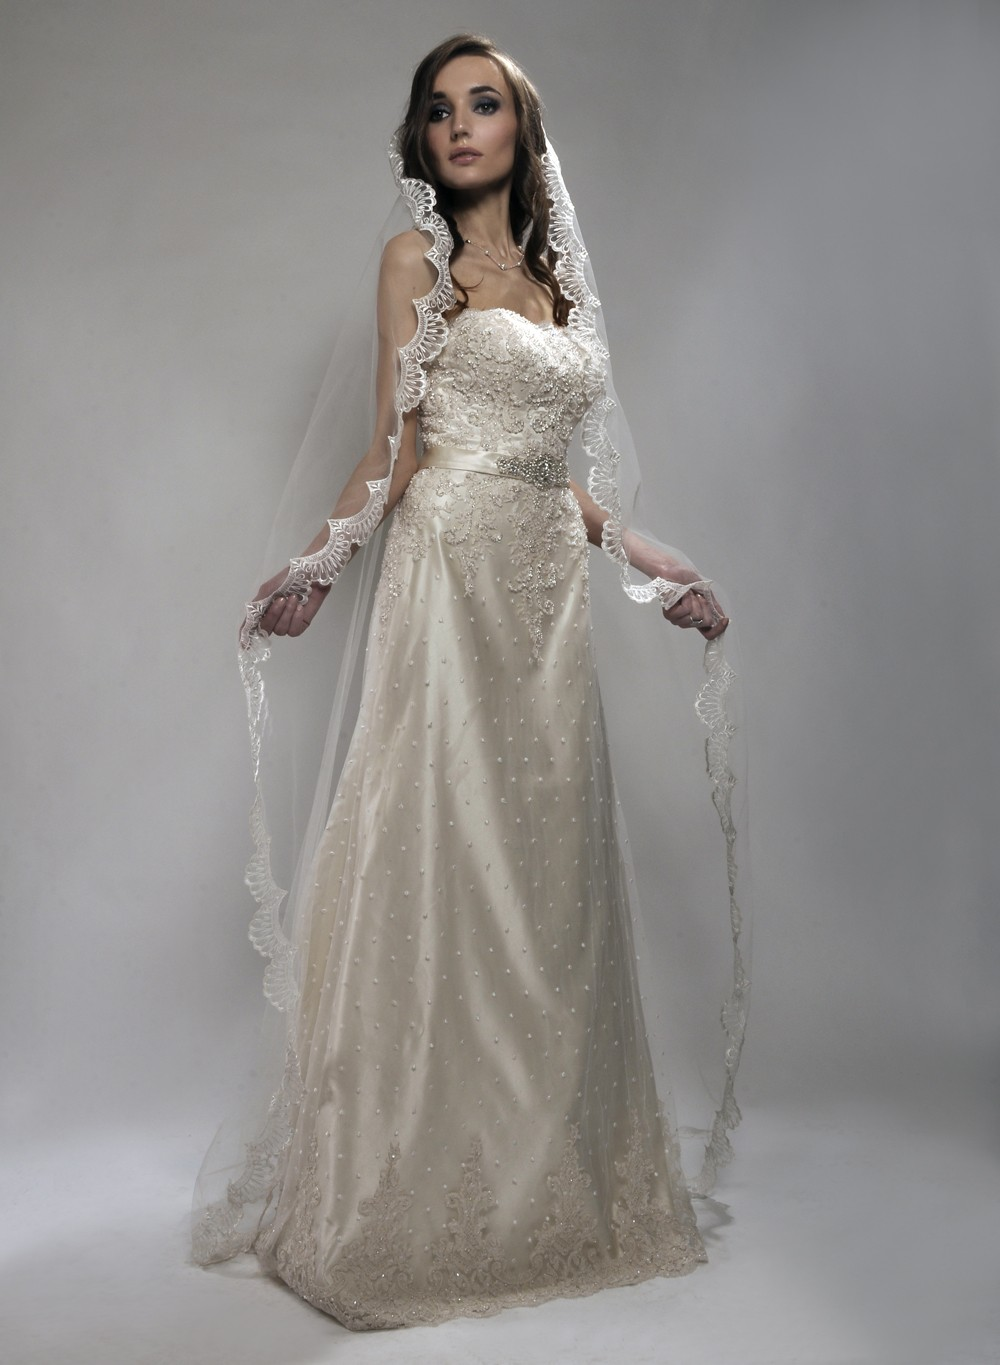 Long Bridal Veils From Fingertip Veils To Dramatic Cathedral Length Stunners